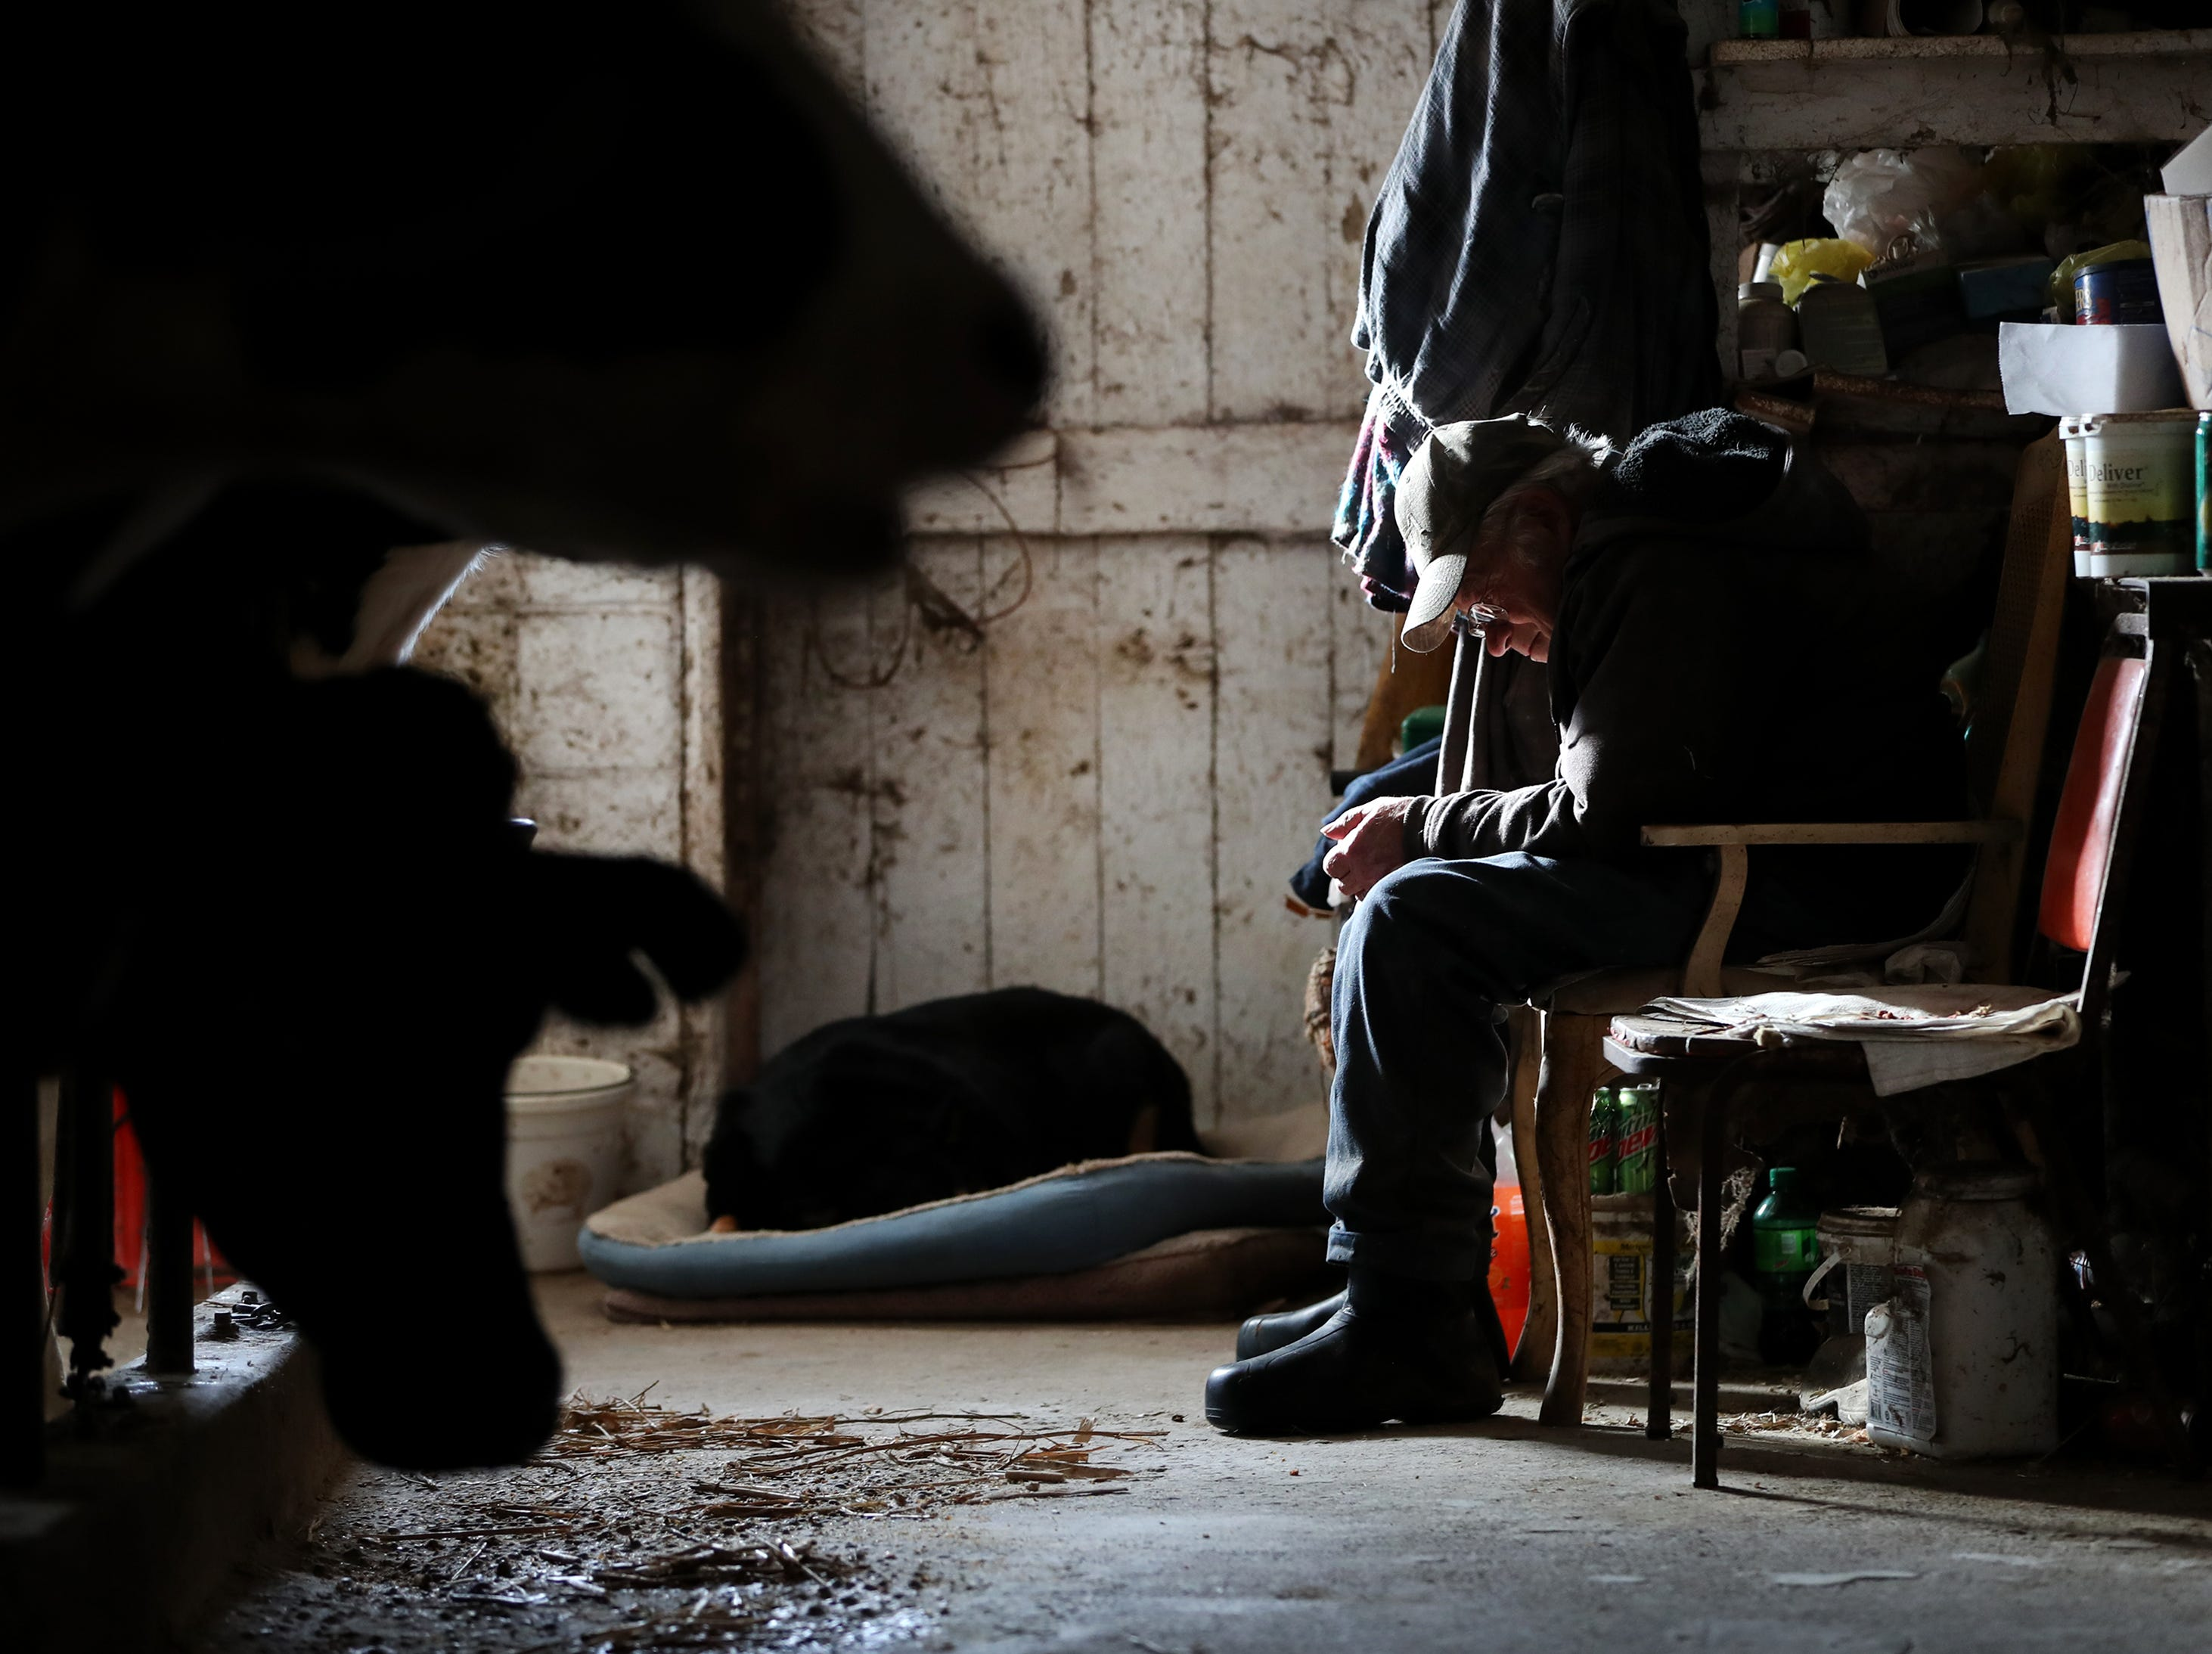 'I don't know what else to do': Fremont dairy farmers fight to survive after 55 years